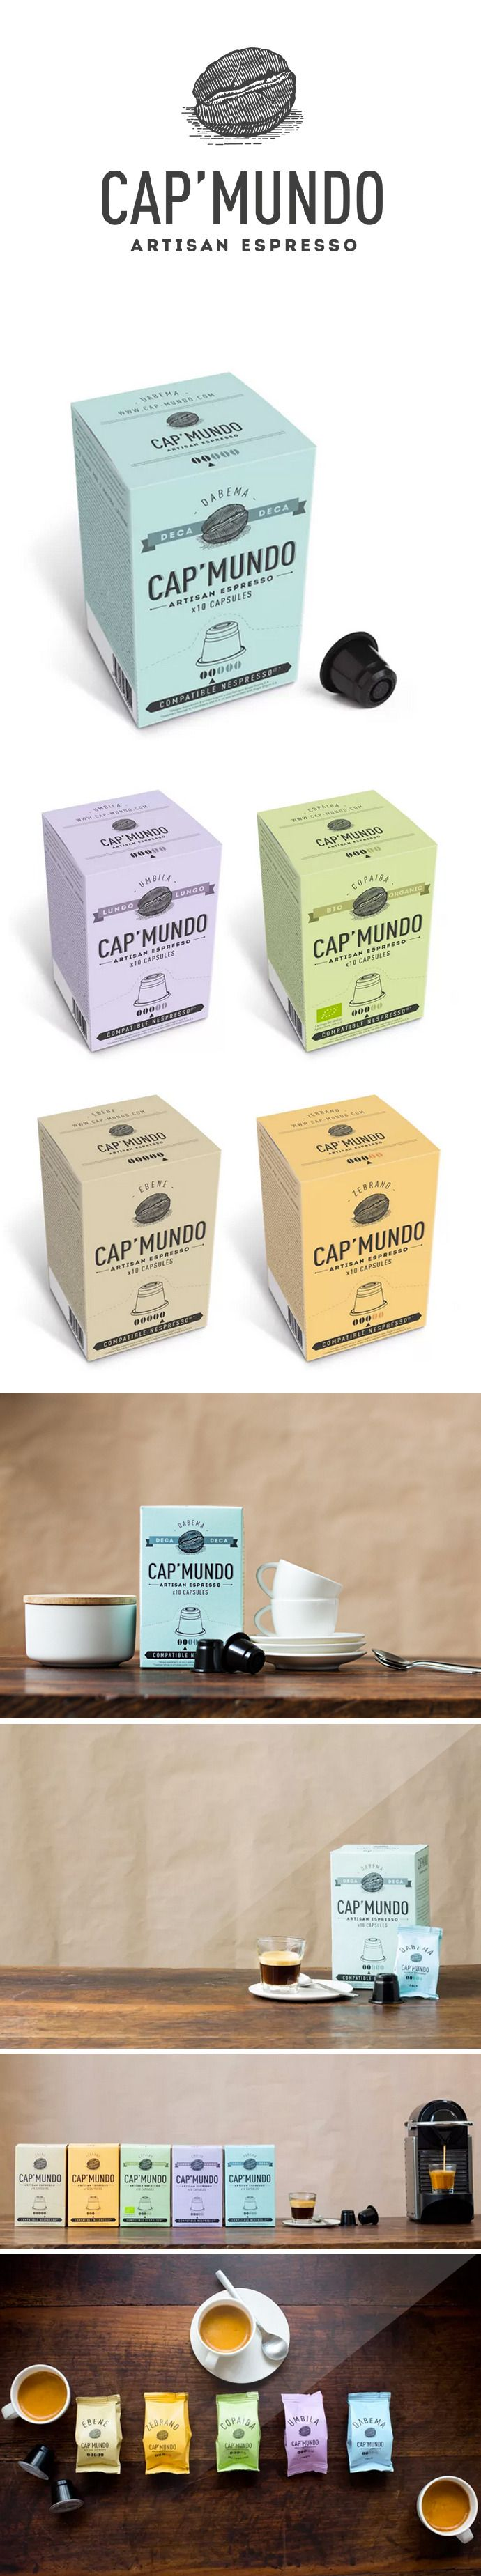 Capmundo Artisan Coffee by Misssnow. Let's have a cup #packaging PD